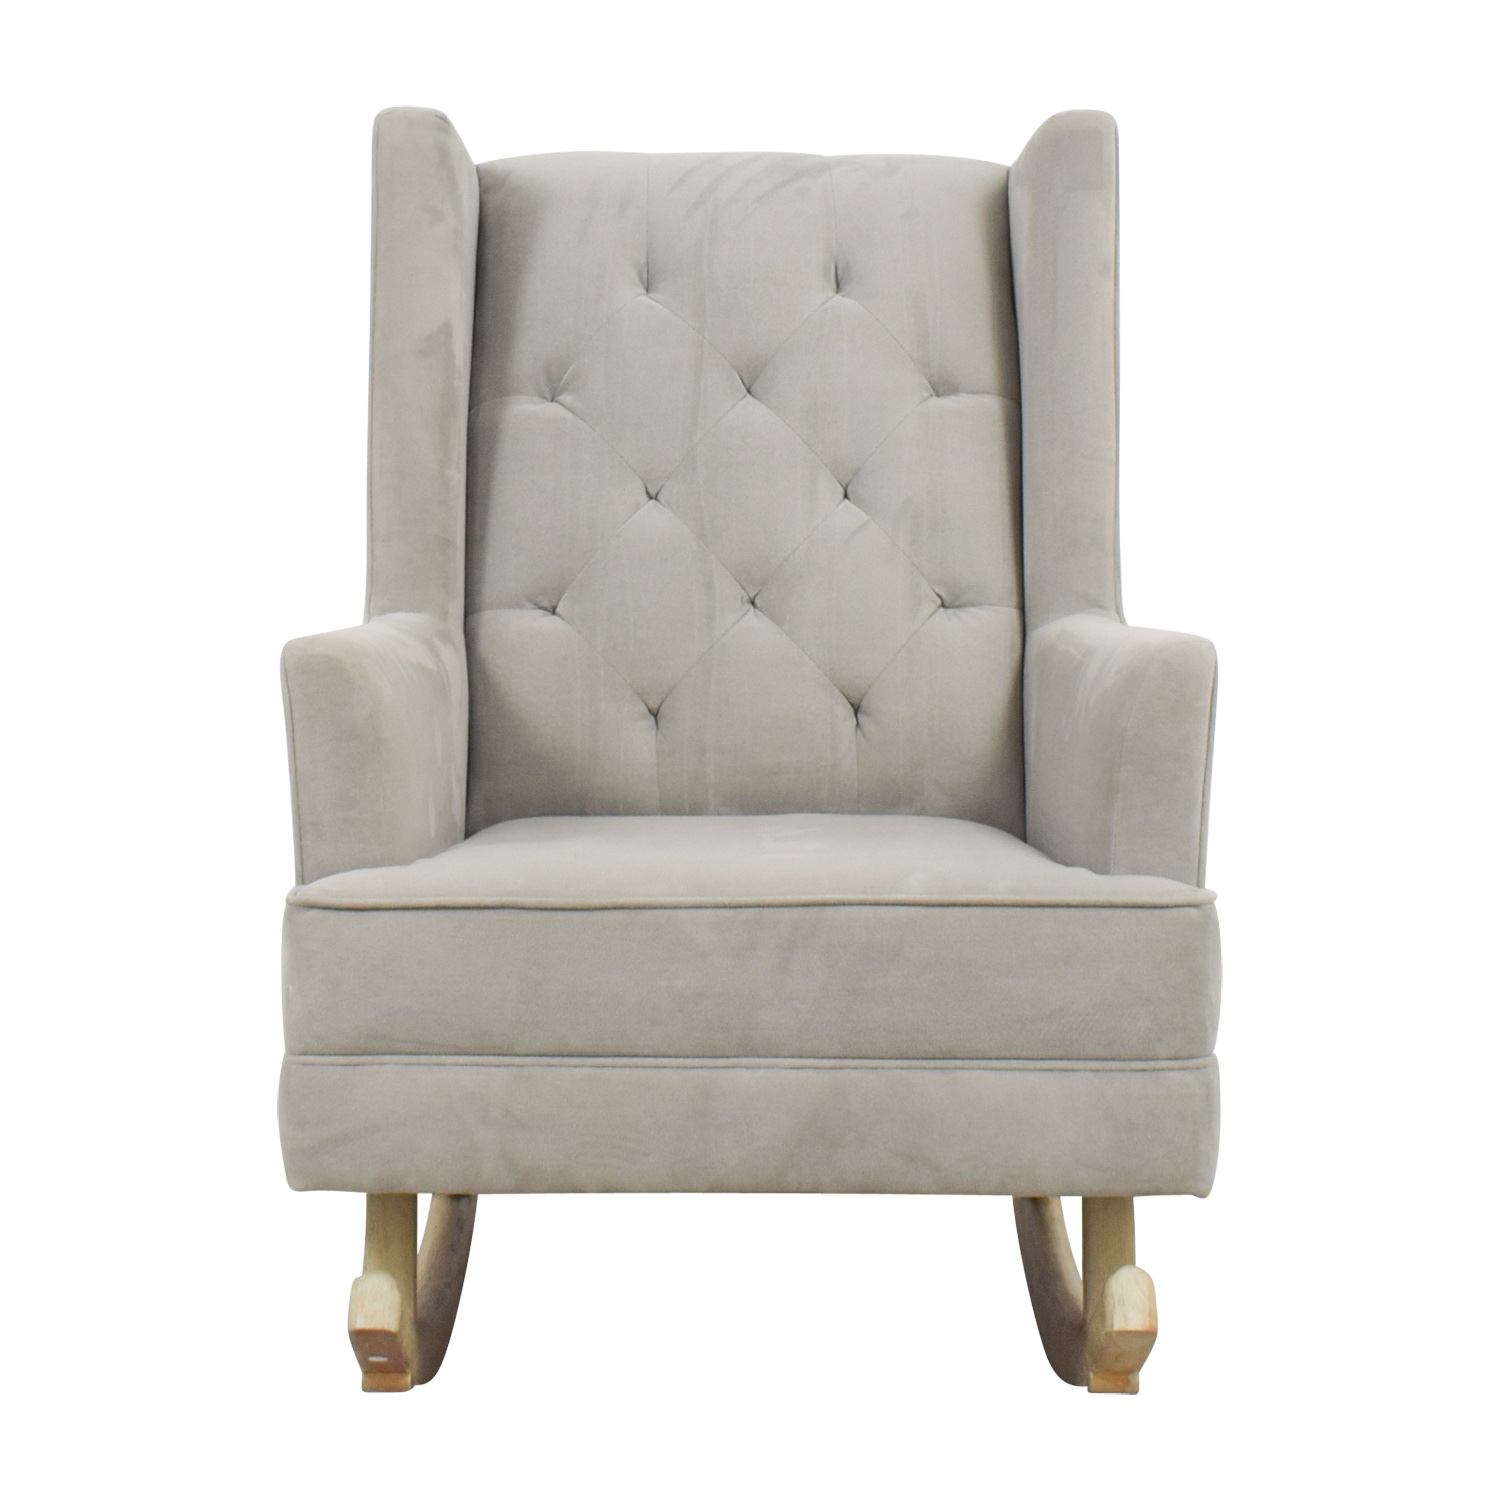 Pottery Barn Grey Tufted Wingback Rocker sale  sc 1 st  Kaiyo & 76% OFF - Pottery Barn Pottery Barn Grey Tufted Wingback Rocker / Chairs